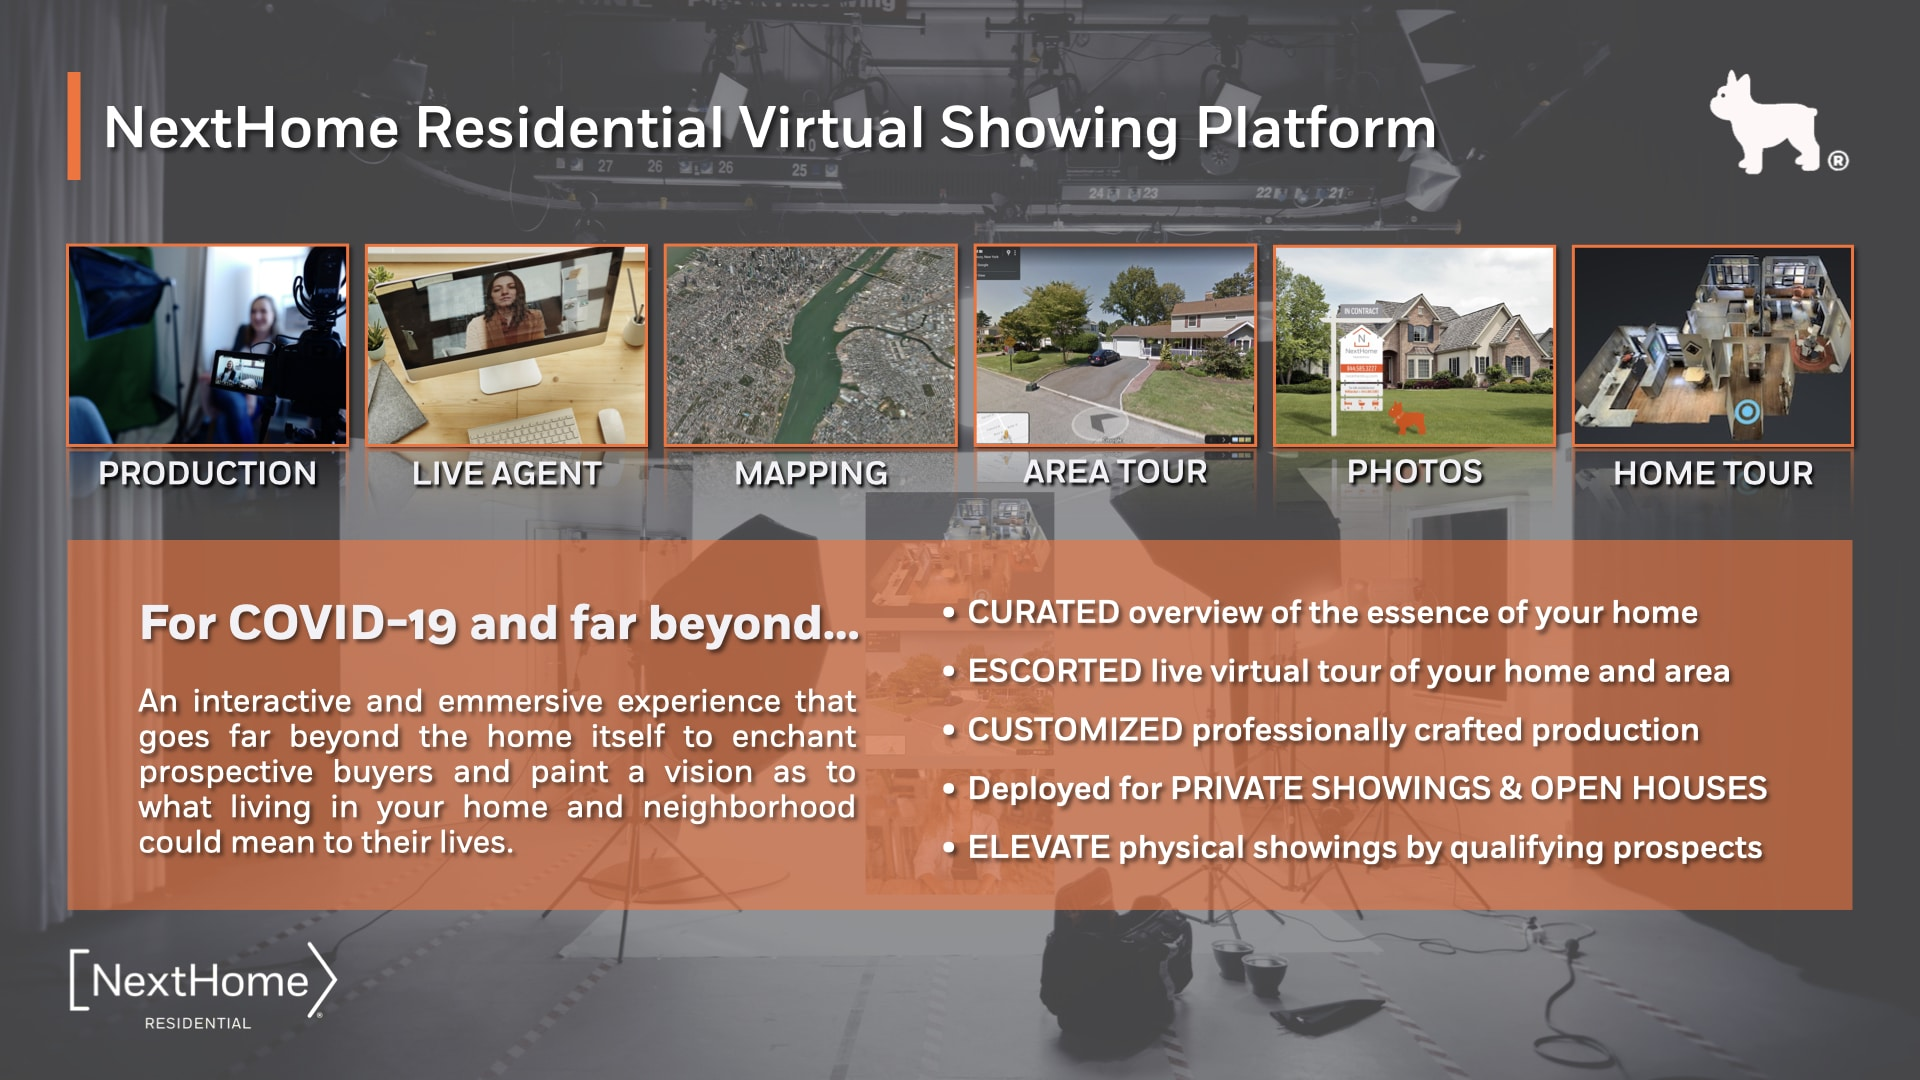 The NextHome Residential Virtual Showing Platform